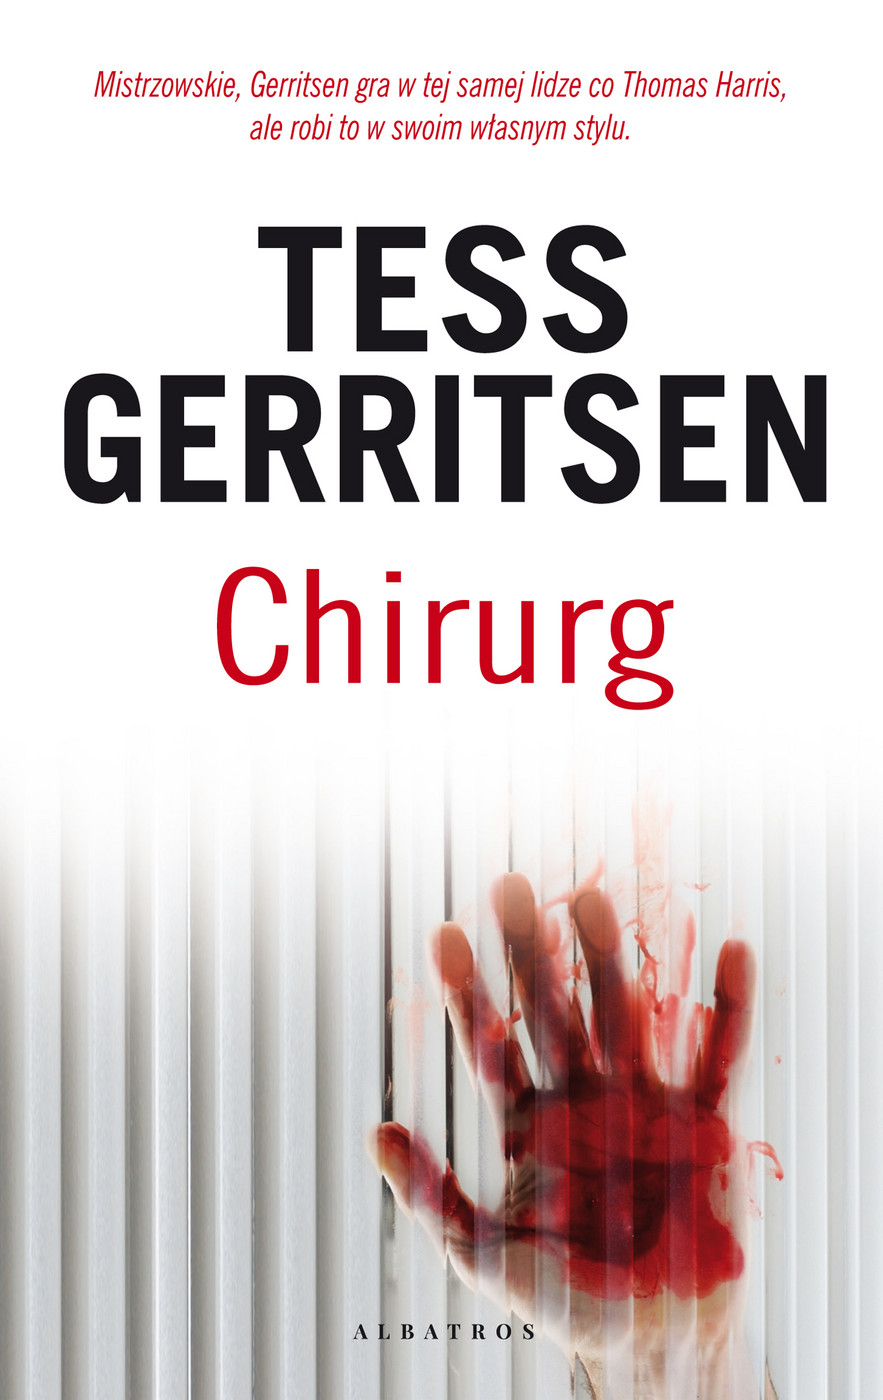 Chirurg,Tess Gerritsen,brutalny zabójca,kryminał,obyczajowe,obyczajowe audiobook,okręt audiobook,okręt audiobook download mp3,okręt do słuchania,okręt download mp3,okręt książka do słuchania